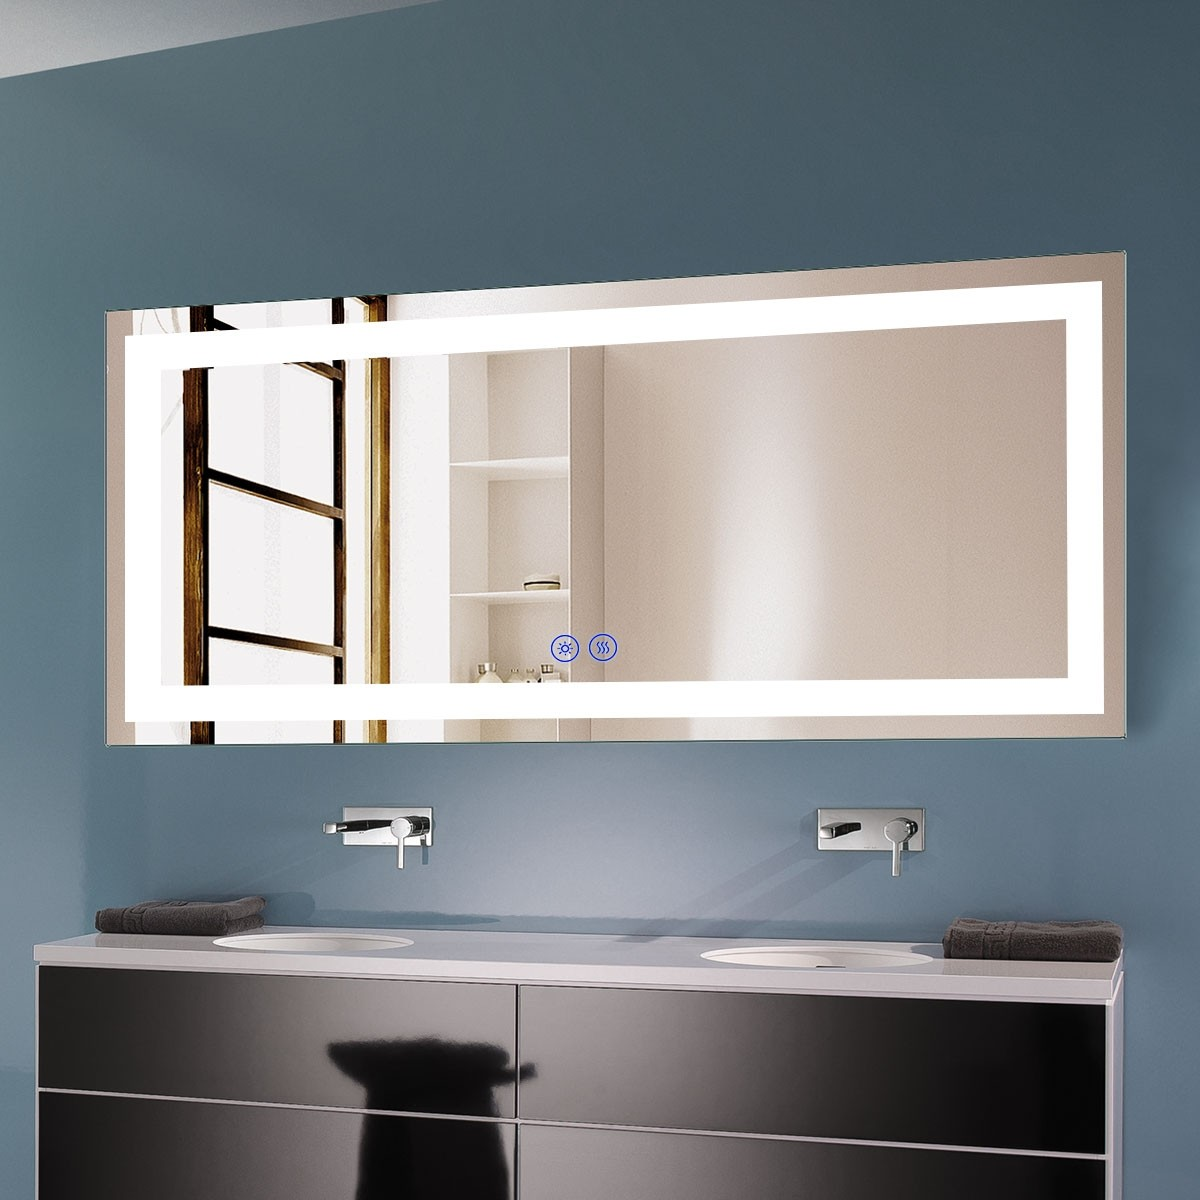 DECORAPORT 70 x 32 Inch LED Bathroom Mirror with Touch Button, Anti Fog, Dimmable, Bluetooth Speakers, Vertical & Horizontal Mount (D221-7032A)